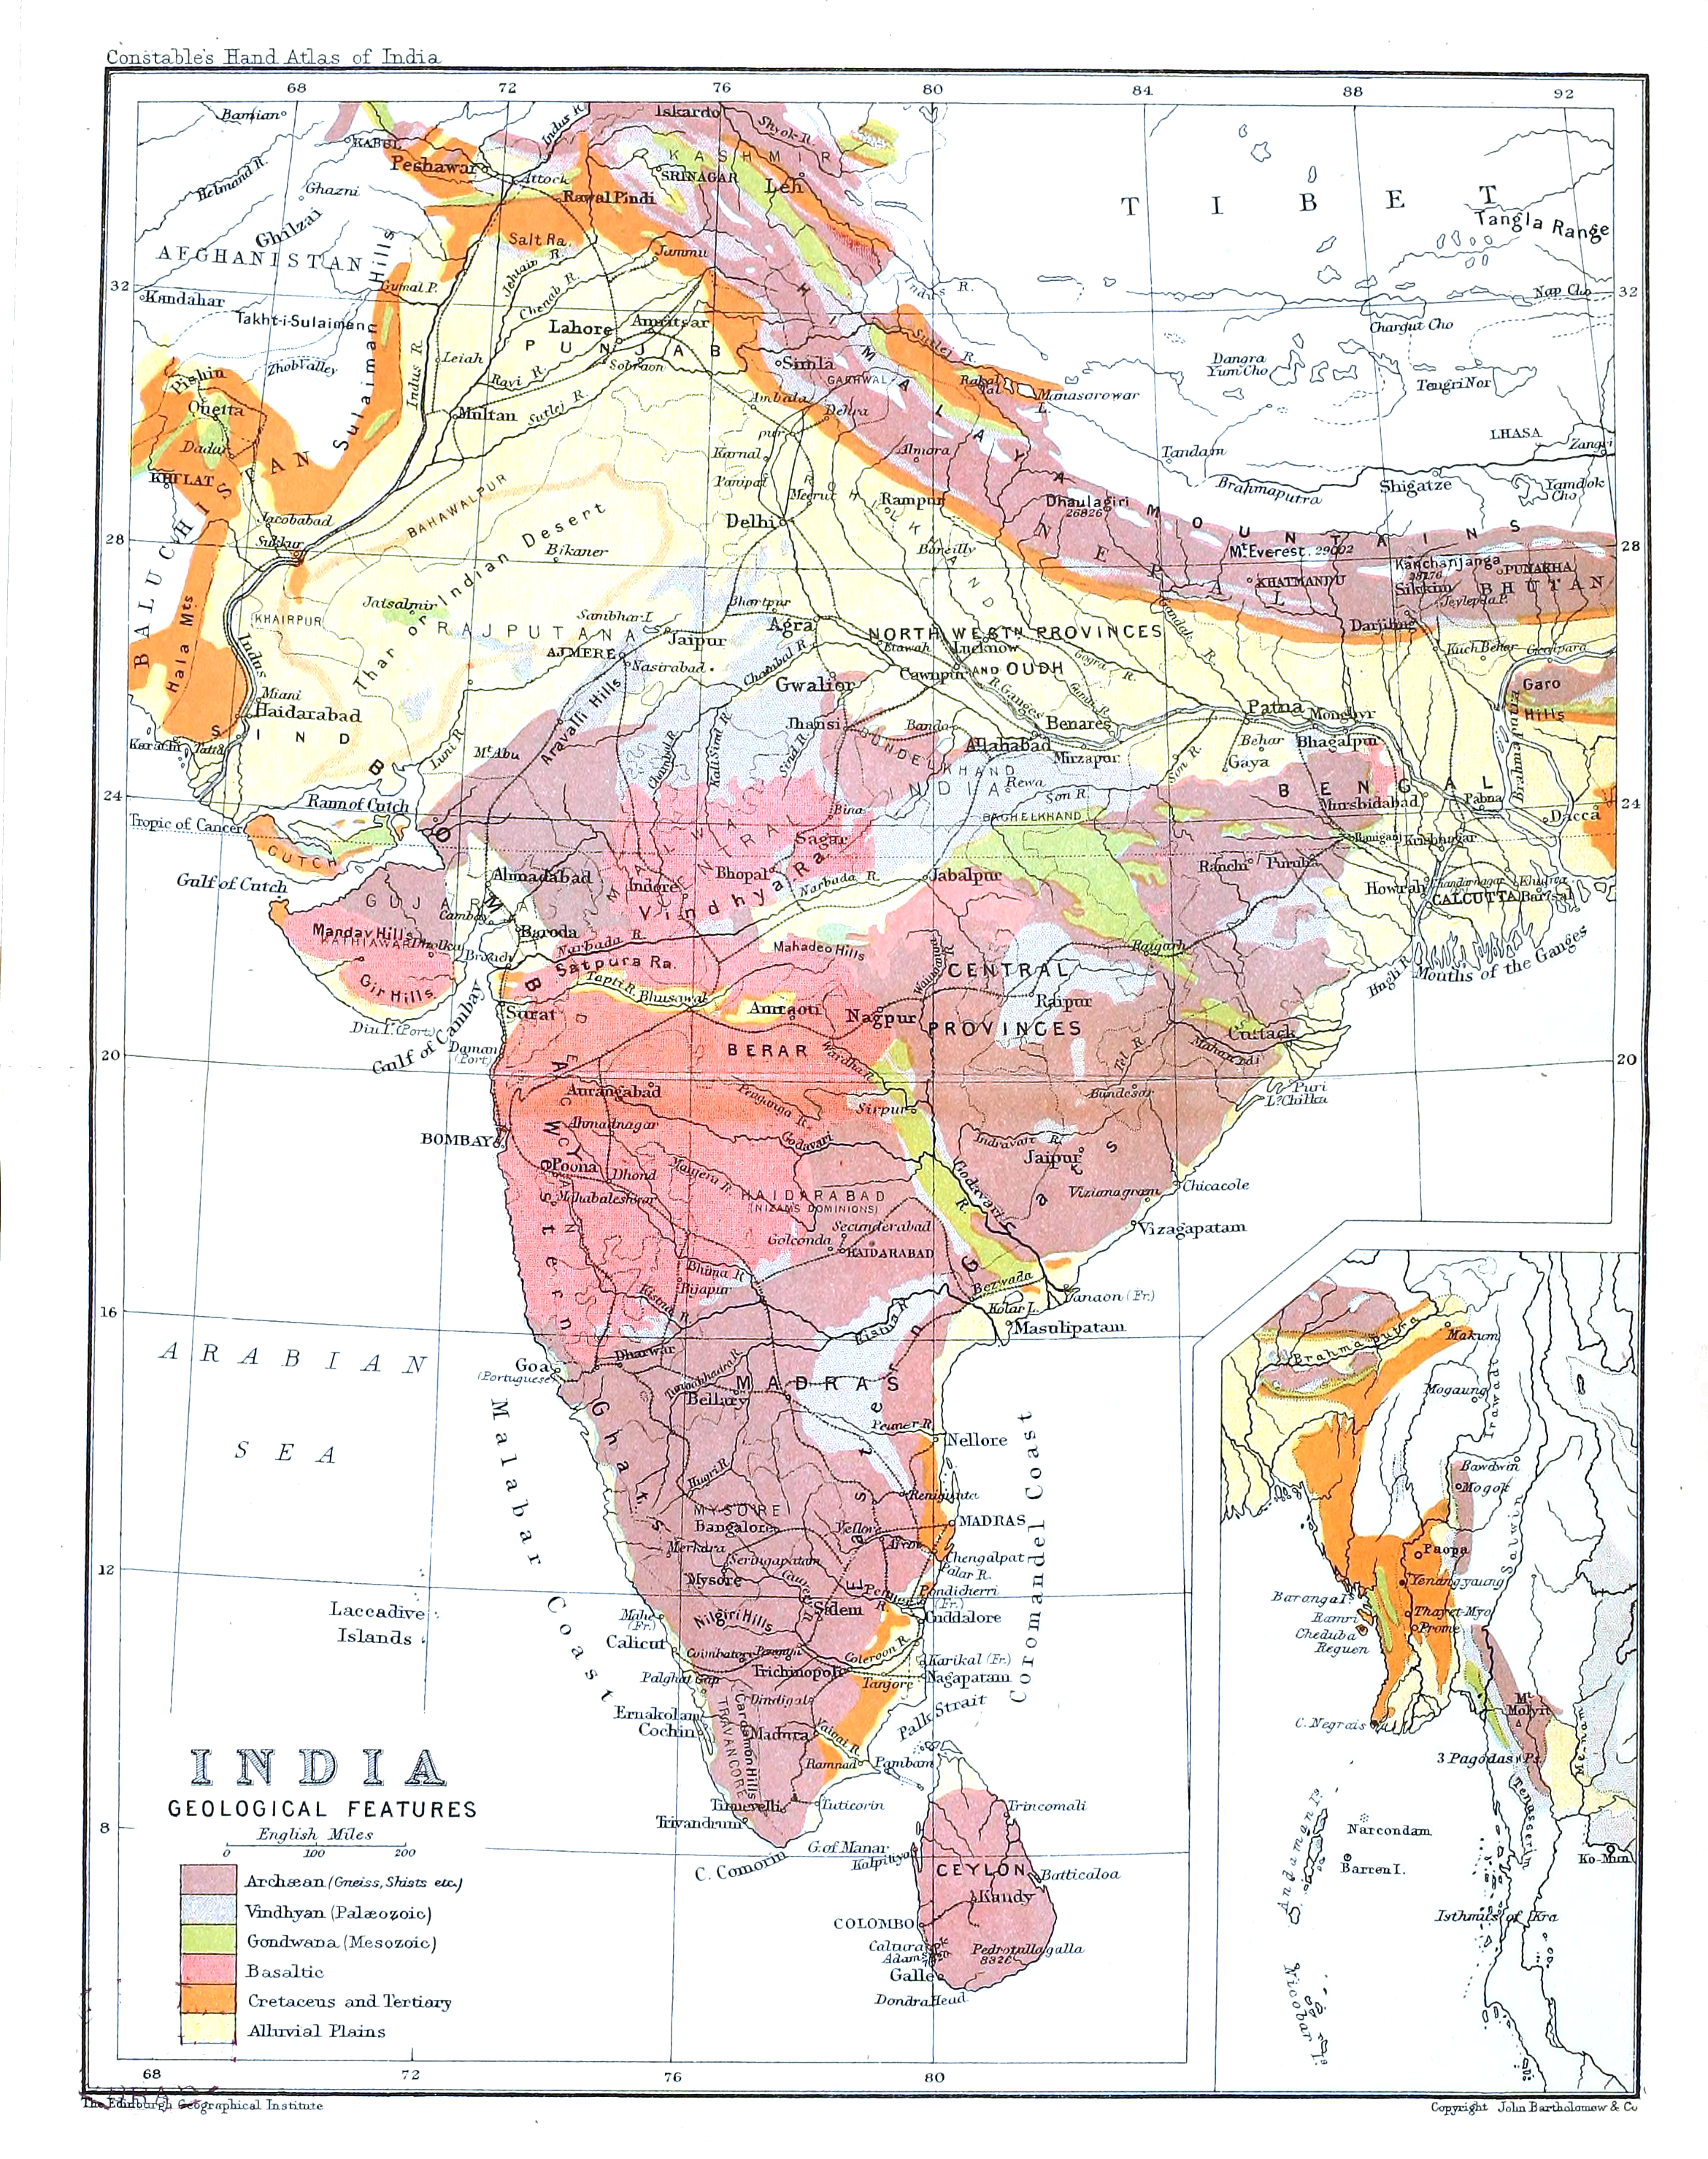 Geological Map Of India.File India In 1893 Geological Features Jpg Wikimedia Commons